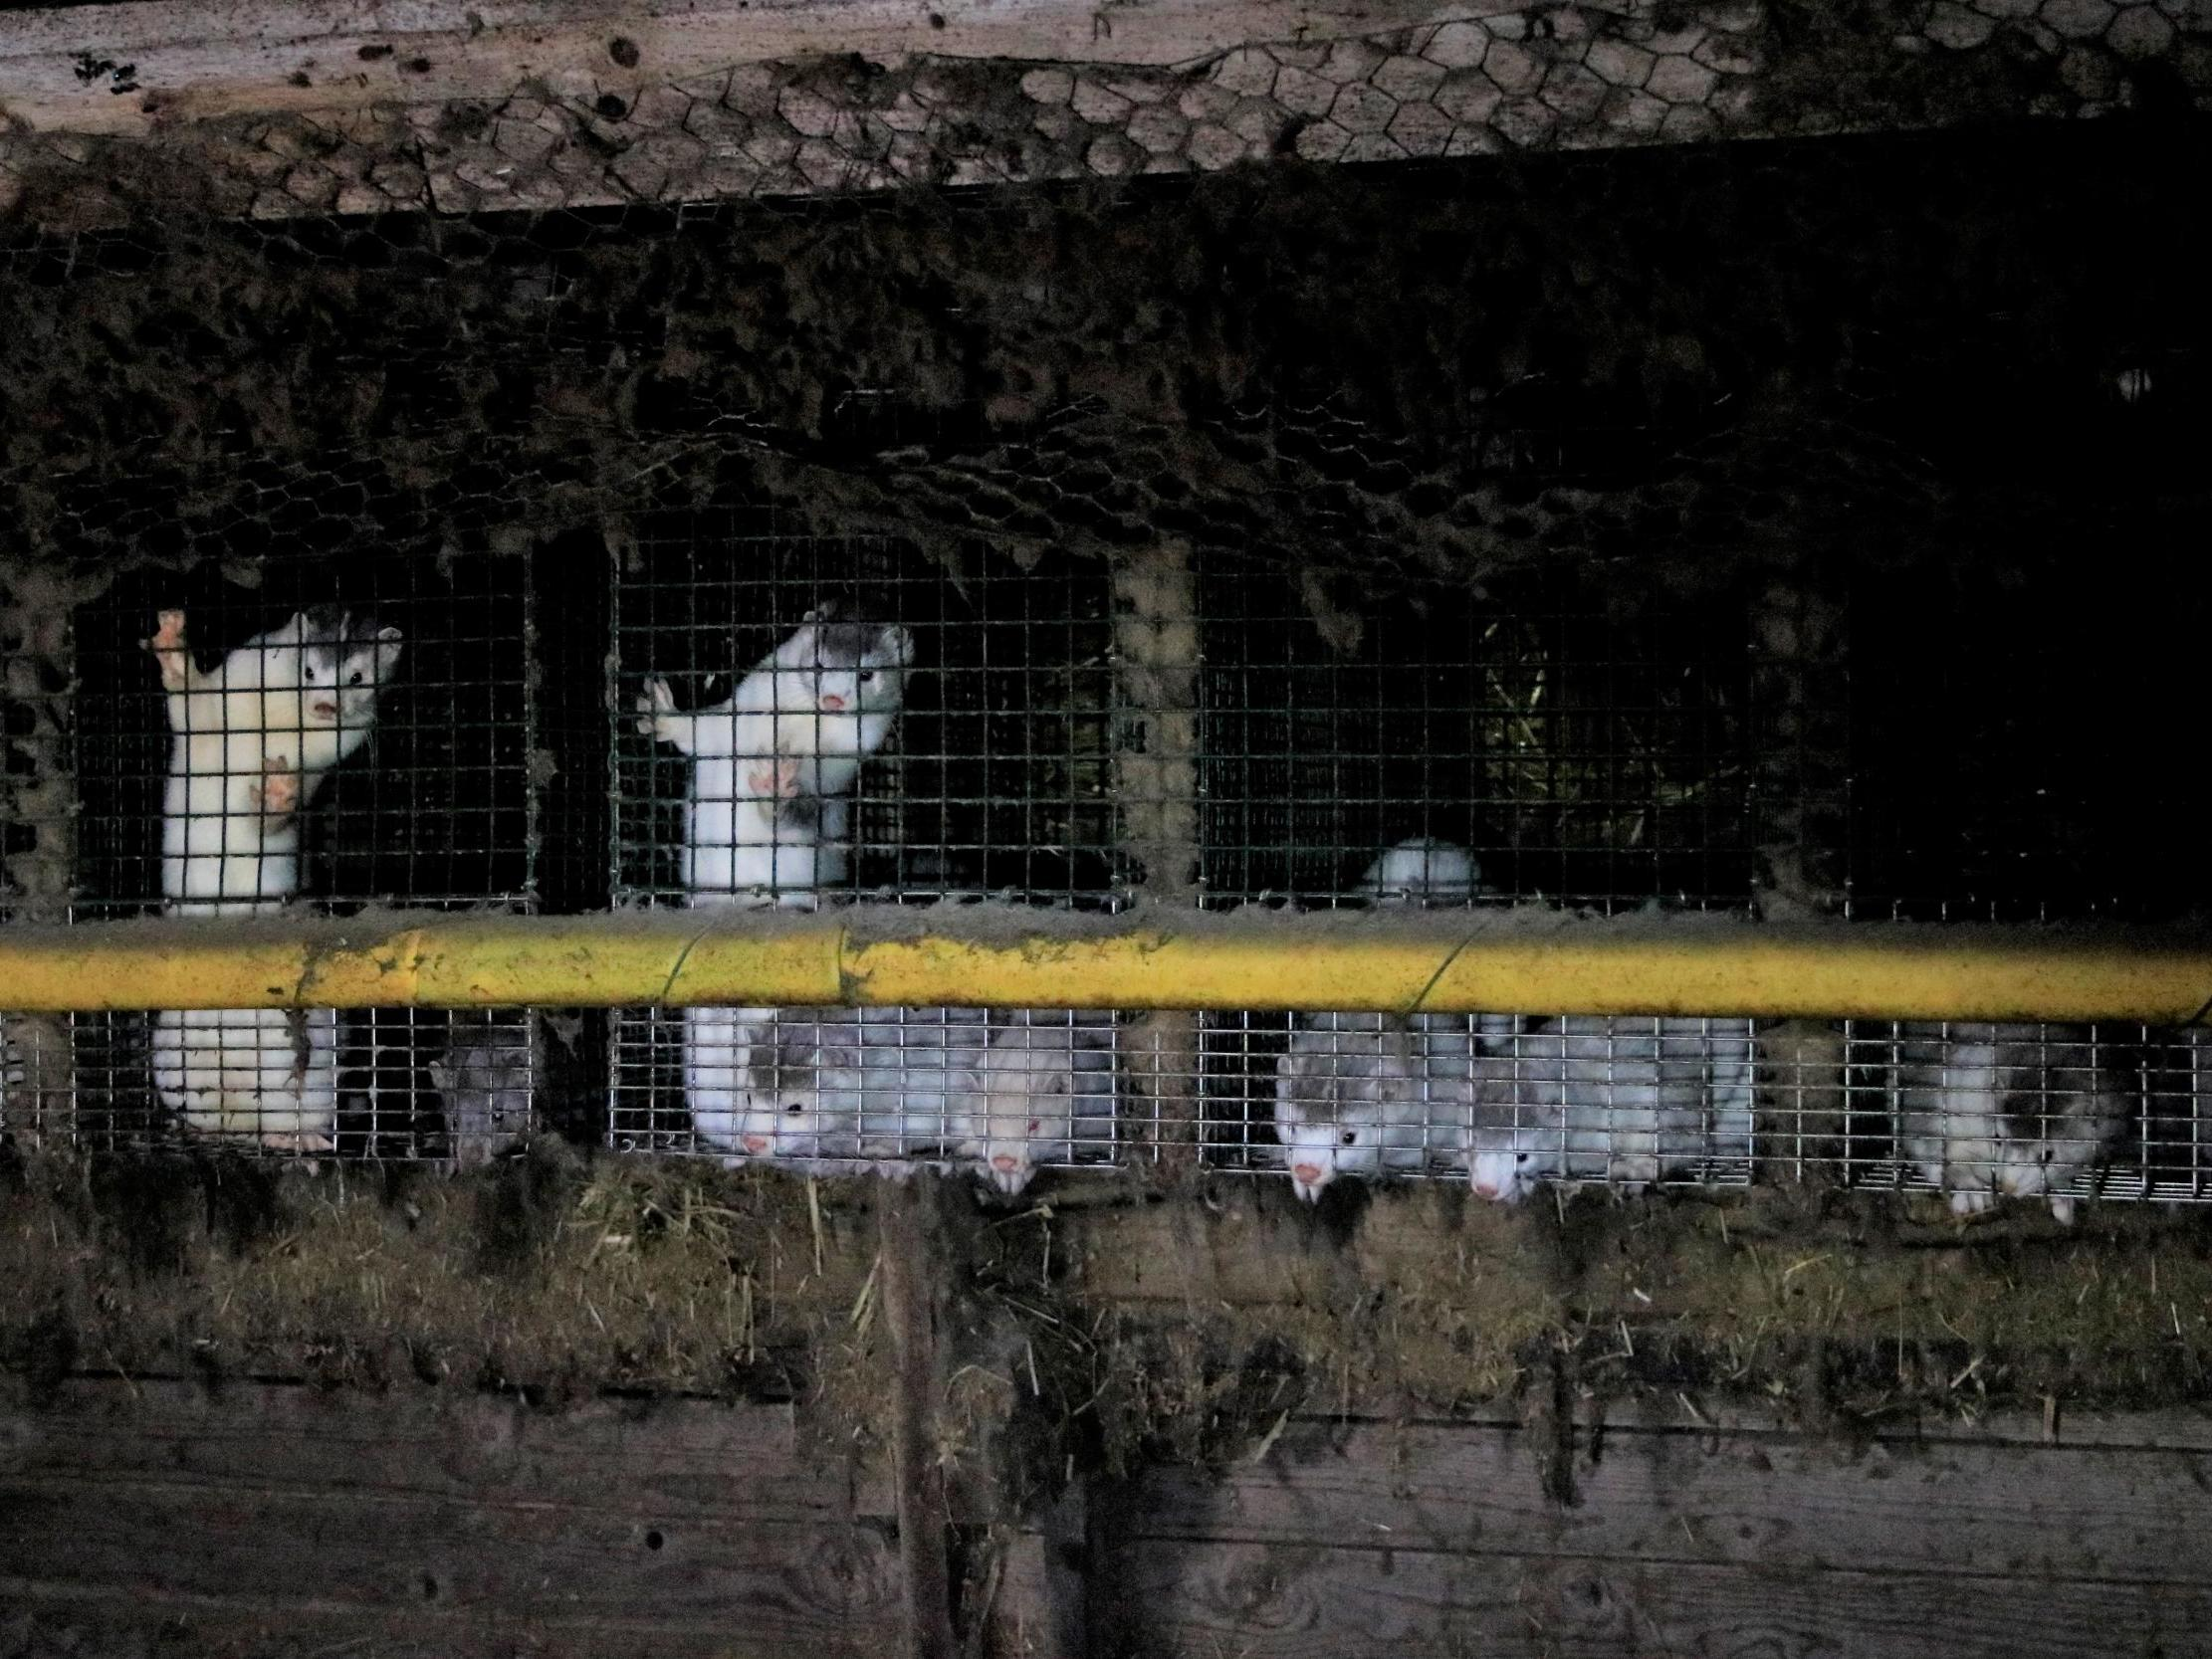 6719d289ae8 Caged animals resort to cannibalism on 'high welfare' fur farms linked to  Britain's most upmarket brands and sellers. '